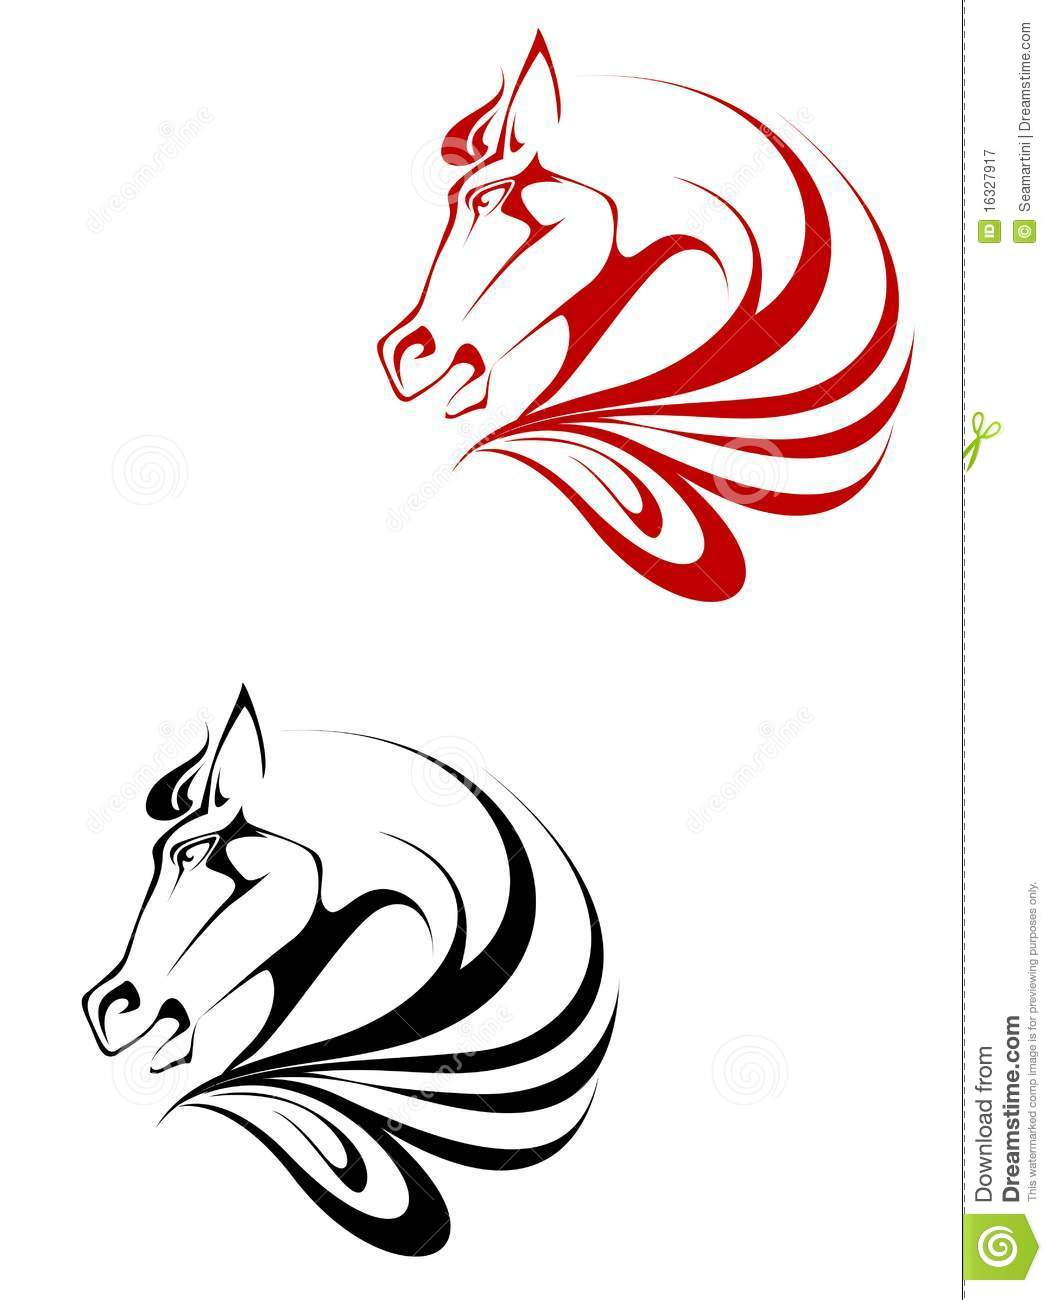 Horse Tattoo Stock Vector Illustration Of Arabian Horseback 16327917